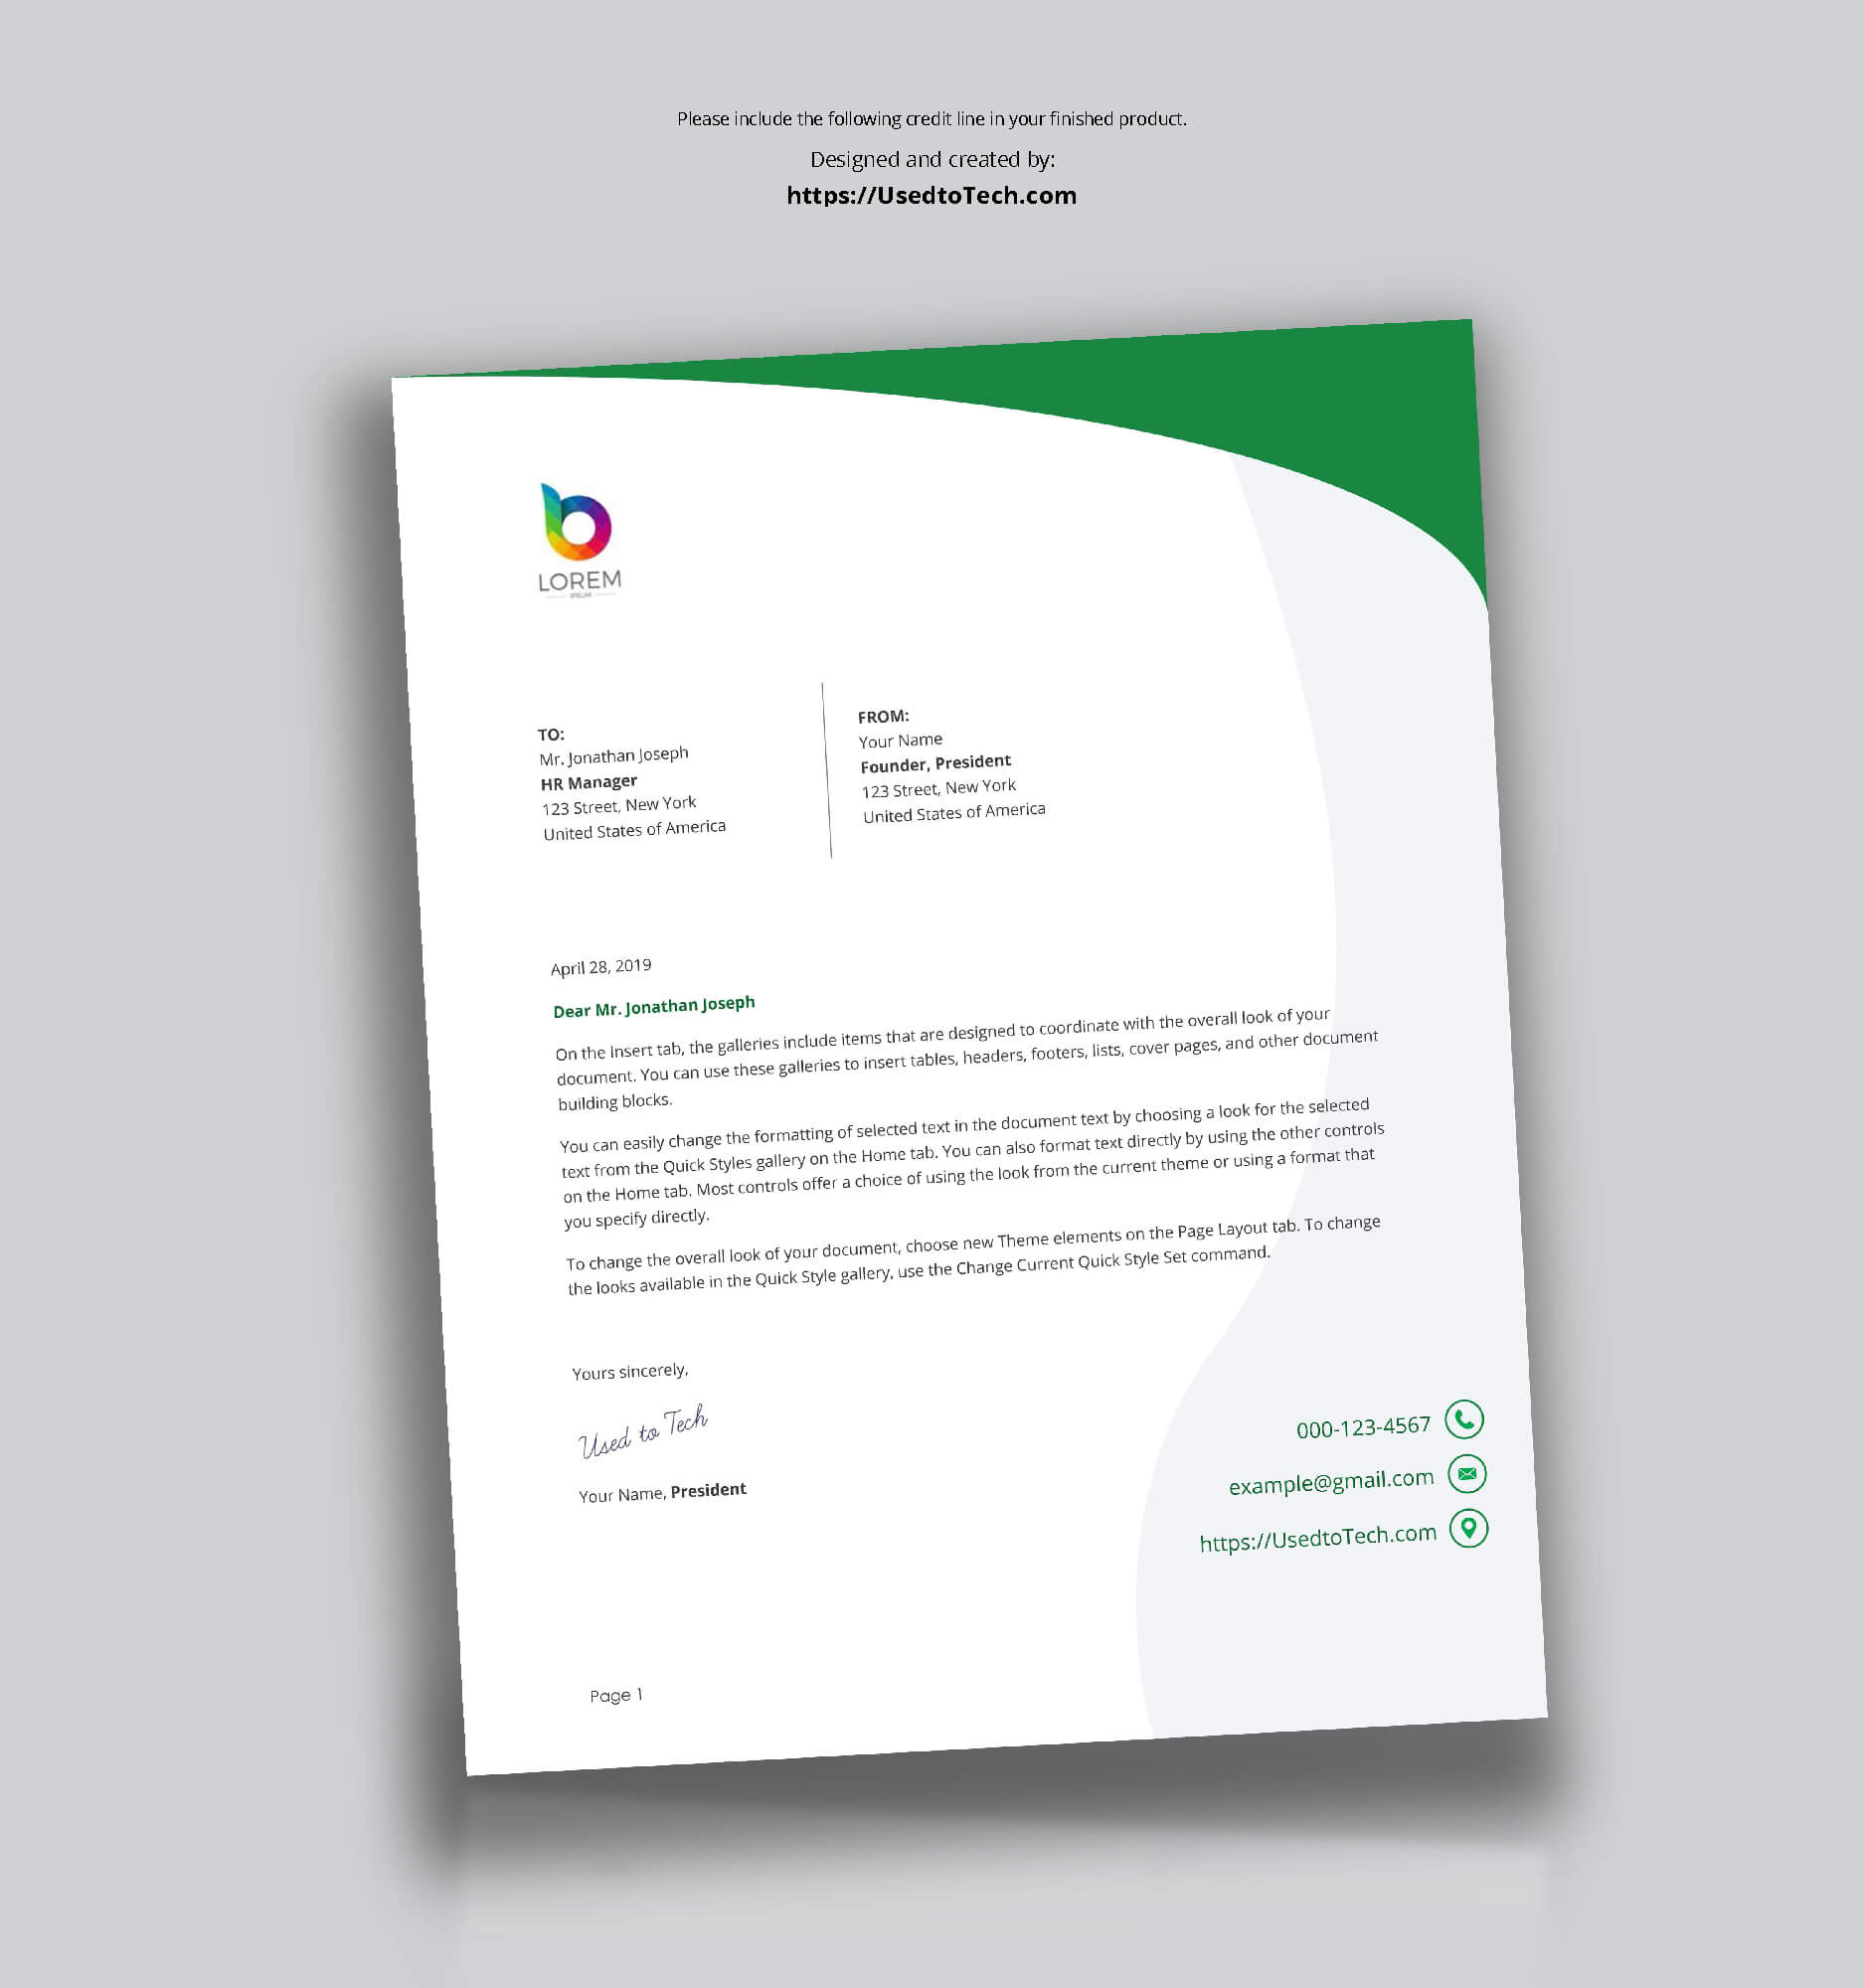 Perfect Letterhead Design In Word Free - Used To Tech intended for Free Letterhead Templates For Microsoft Word